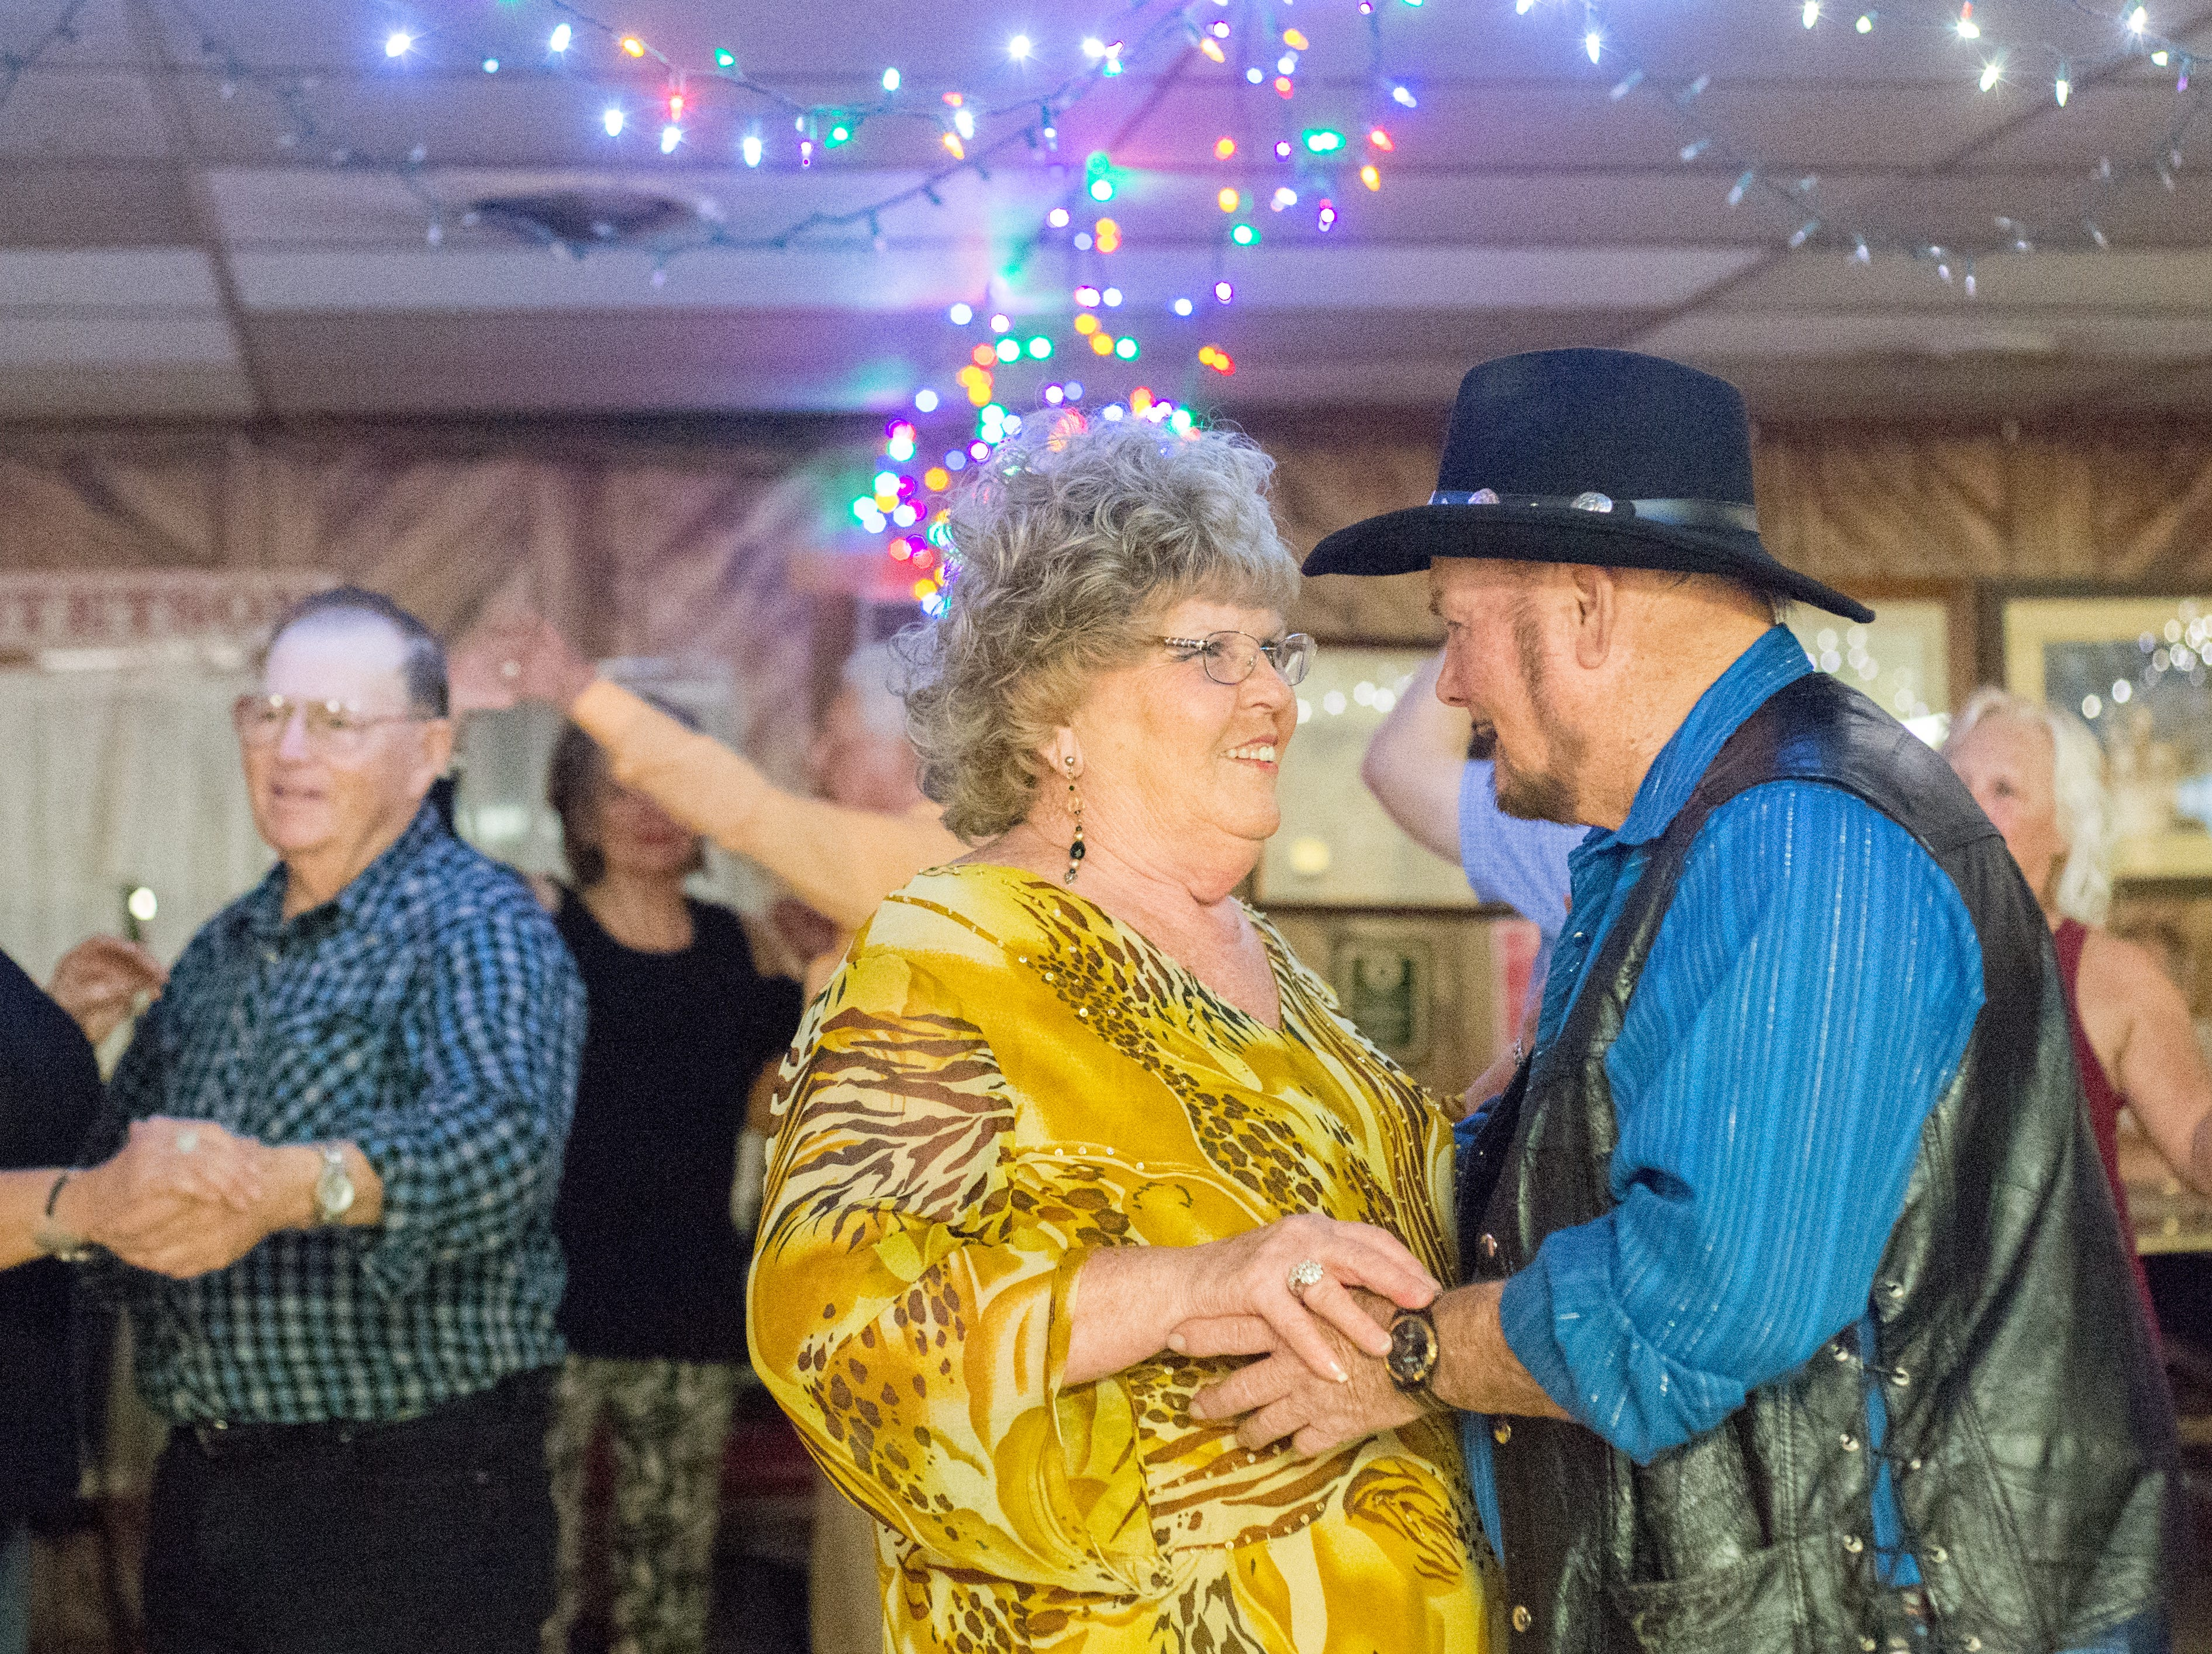 Lois Binkley and Woody Barber enjoy dancing during a performance of the Blue Creek Band at Long Hollow Jamboree in Goodlettsville on Saturday, April 7.